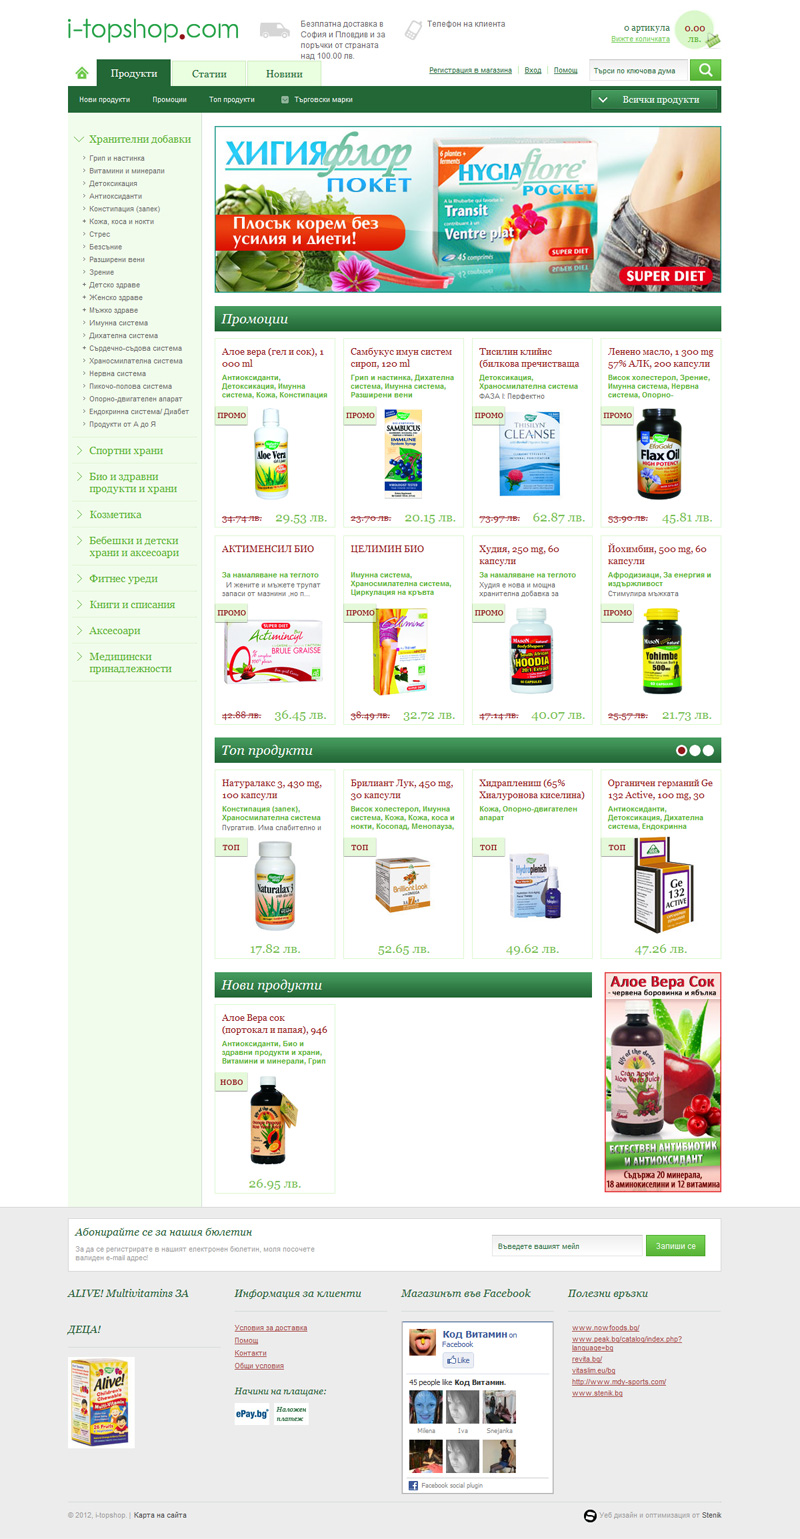 E-shop for food supplements Marulka.com, Revita - Online Shops, Stenik